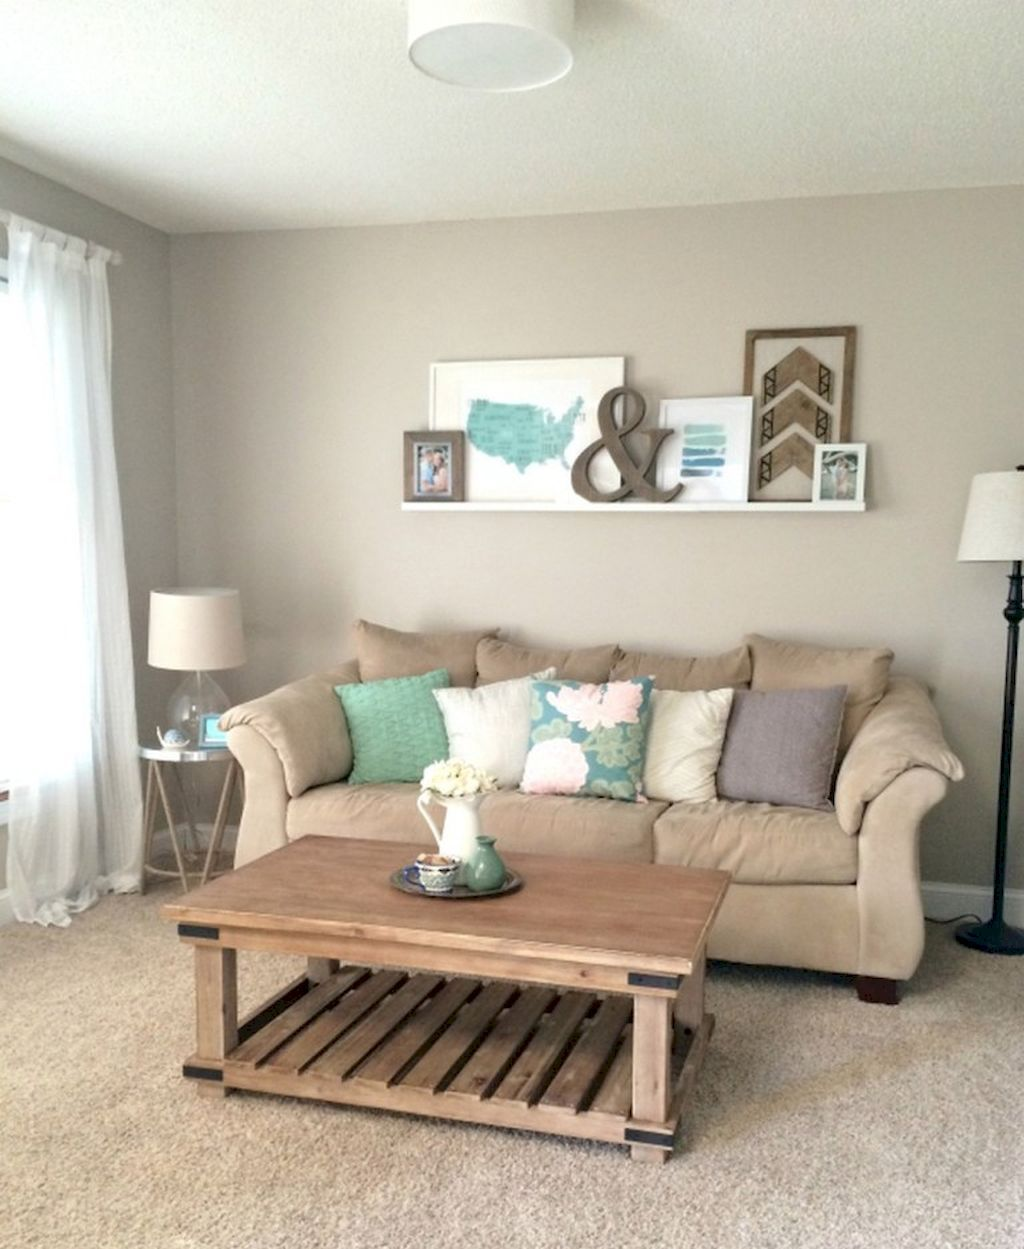 Pinterest Small Living Room Ideas Cheap Home Decor: 7 Interior Design Ideas For Small Apartment